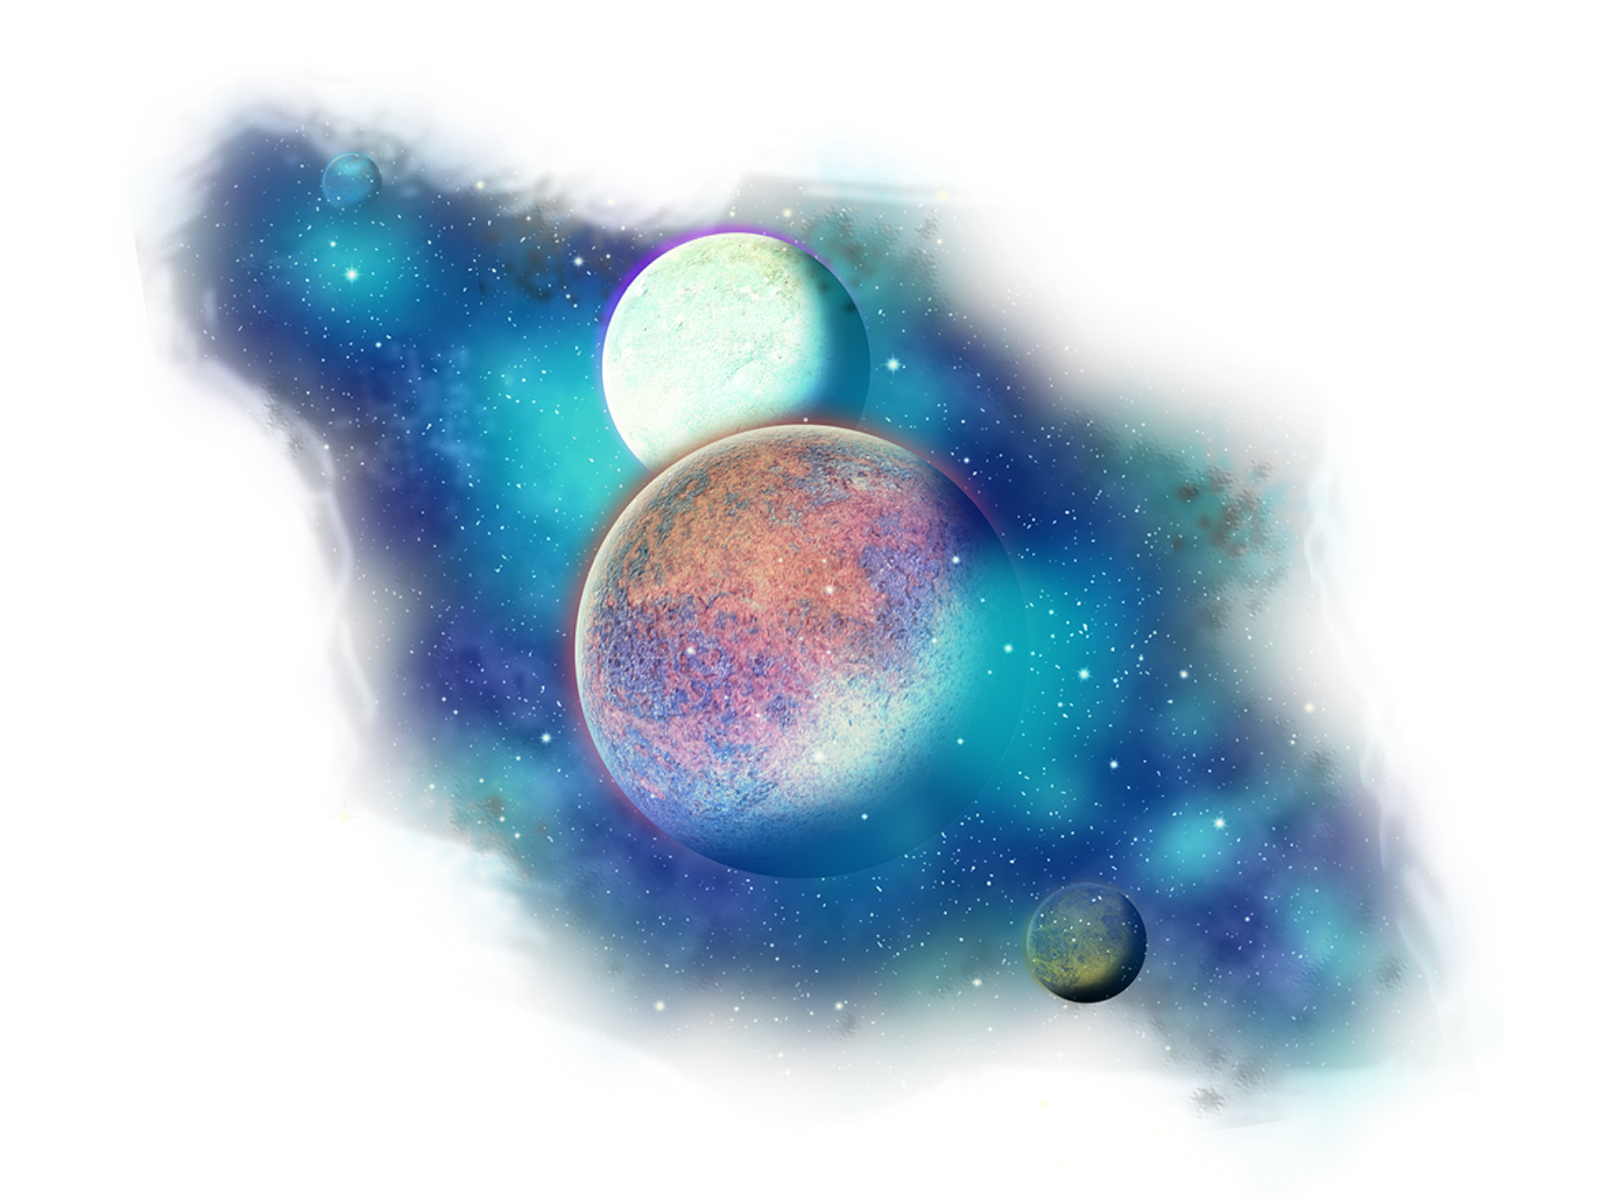 Planet clipart star. Freetoedit png stars galaxy